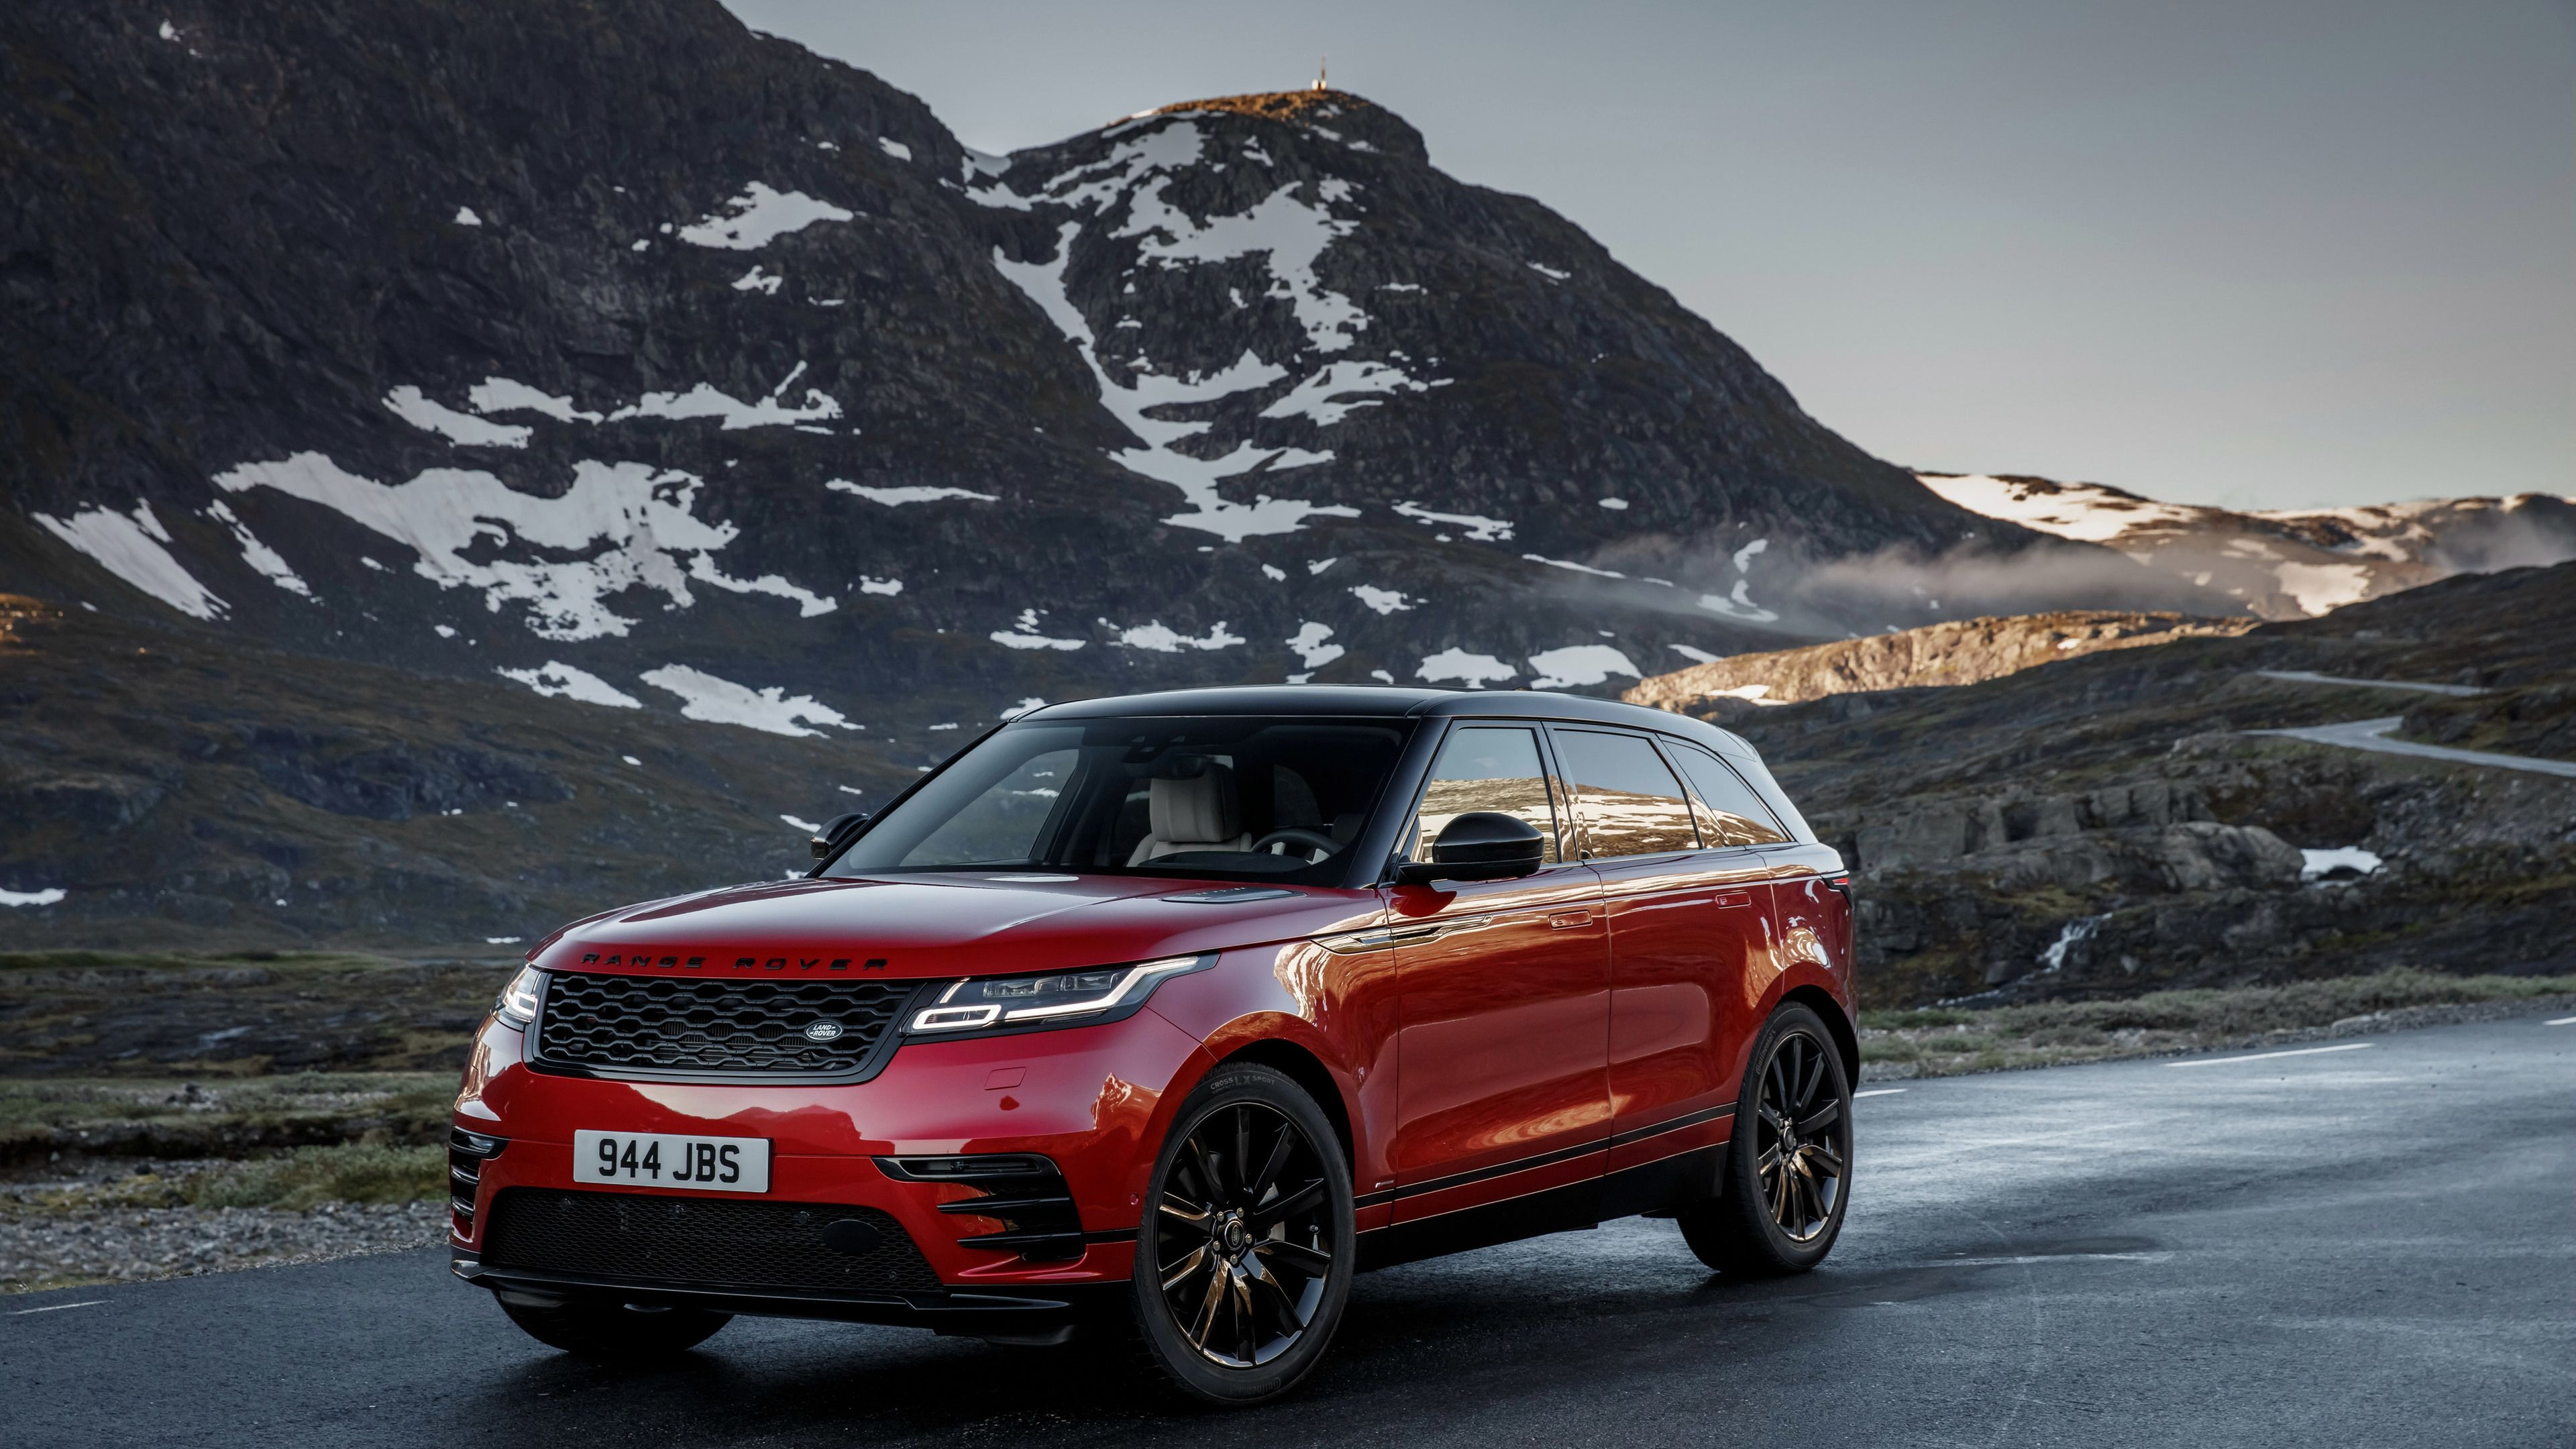 4k Range Rover Wallpapers Top Free 4k Range Rover